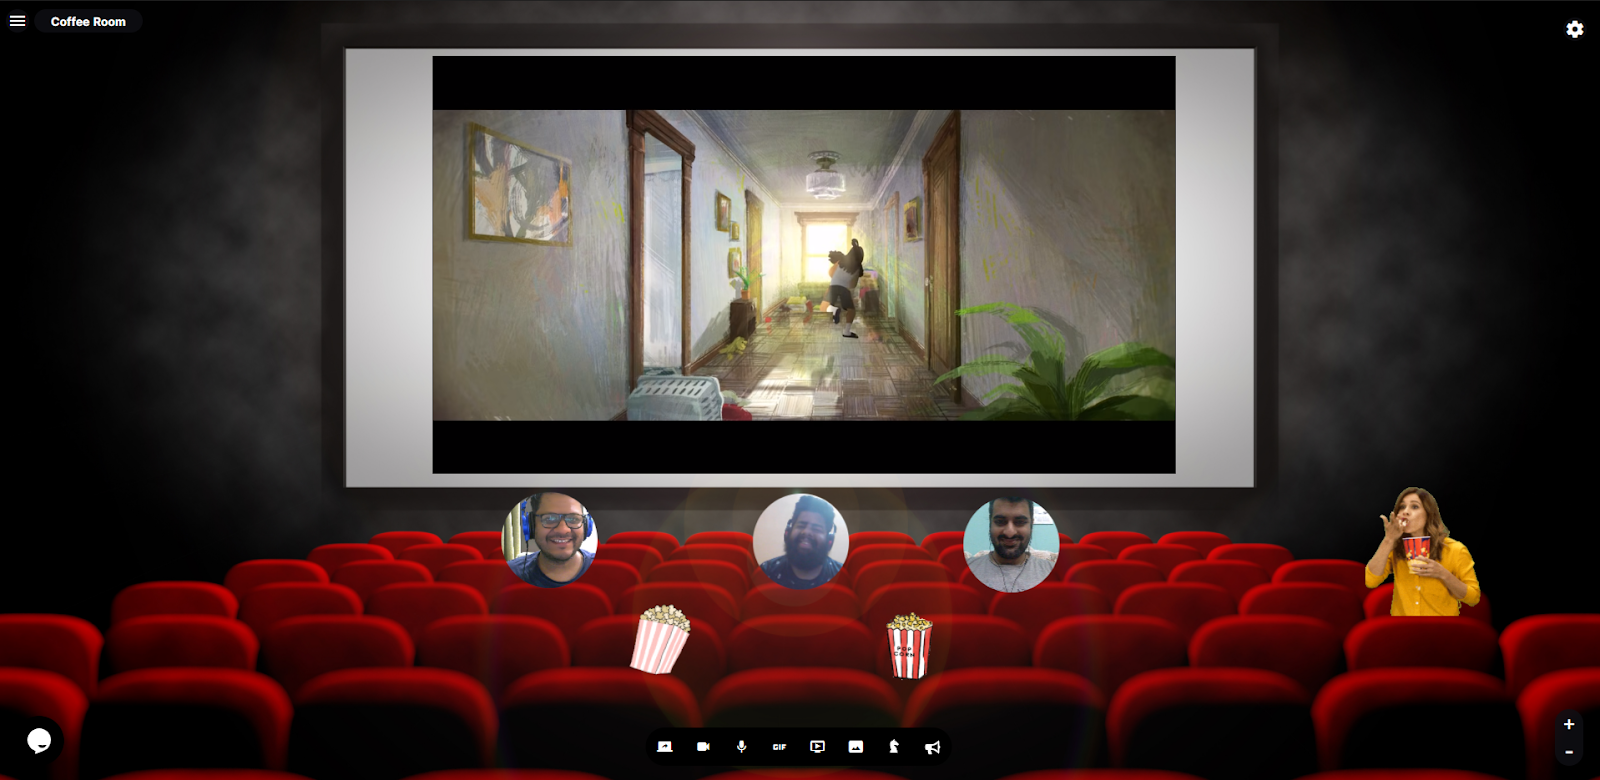 Reslash room with movie playing in theater background